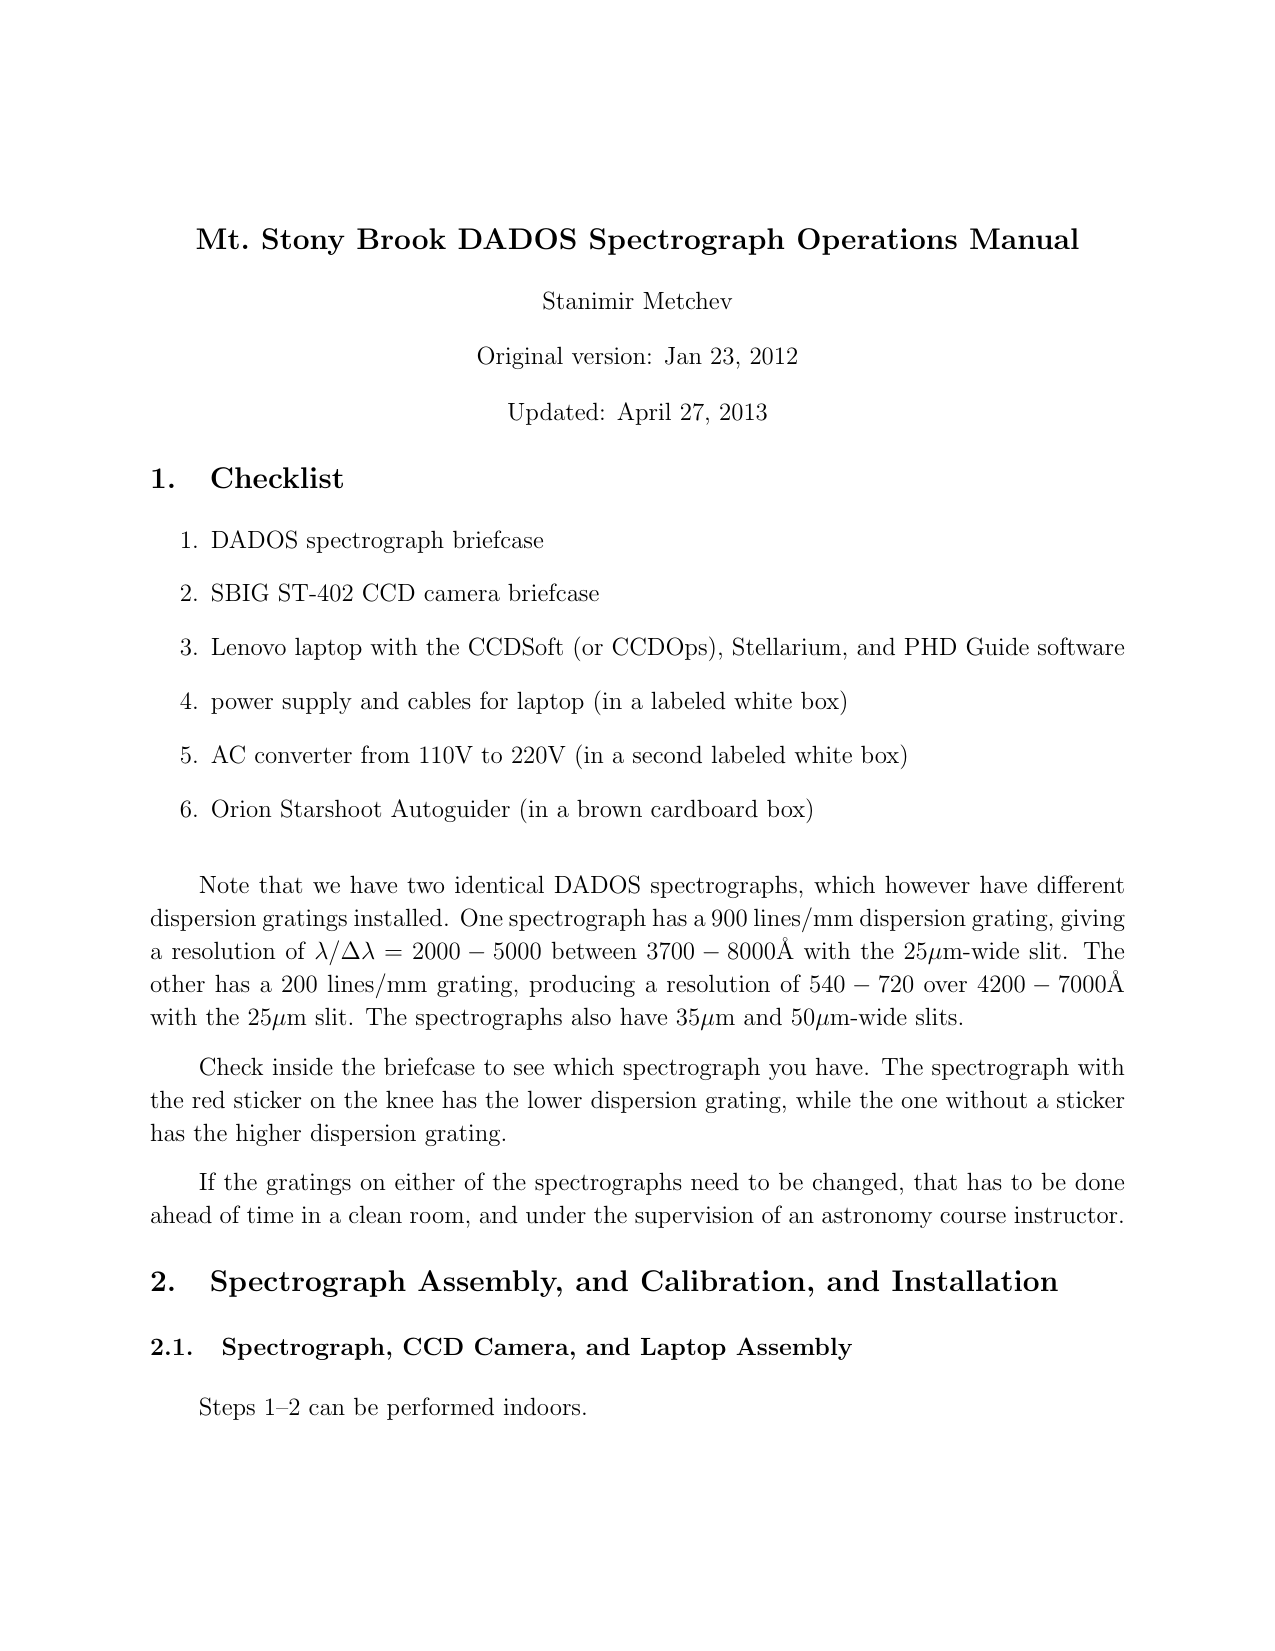 Mt  Stony Brook DADOS Spectrograph Operations Manual 1